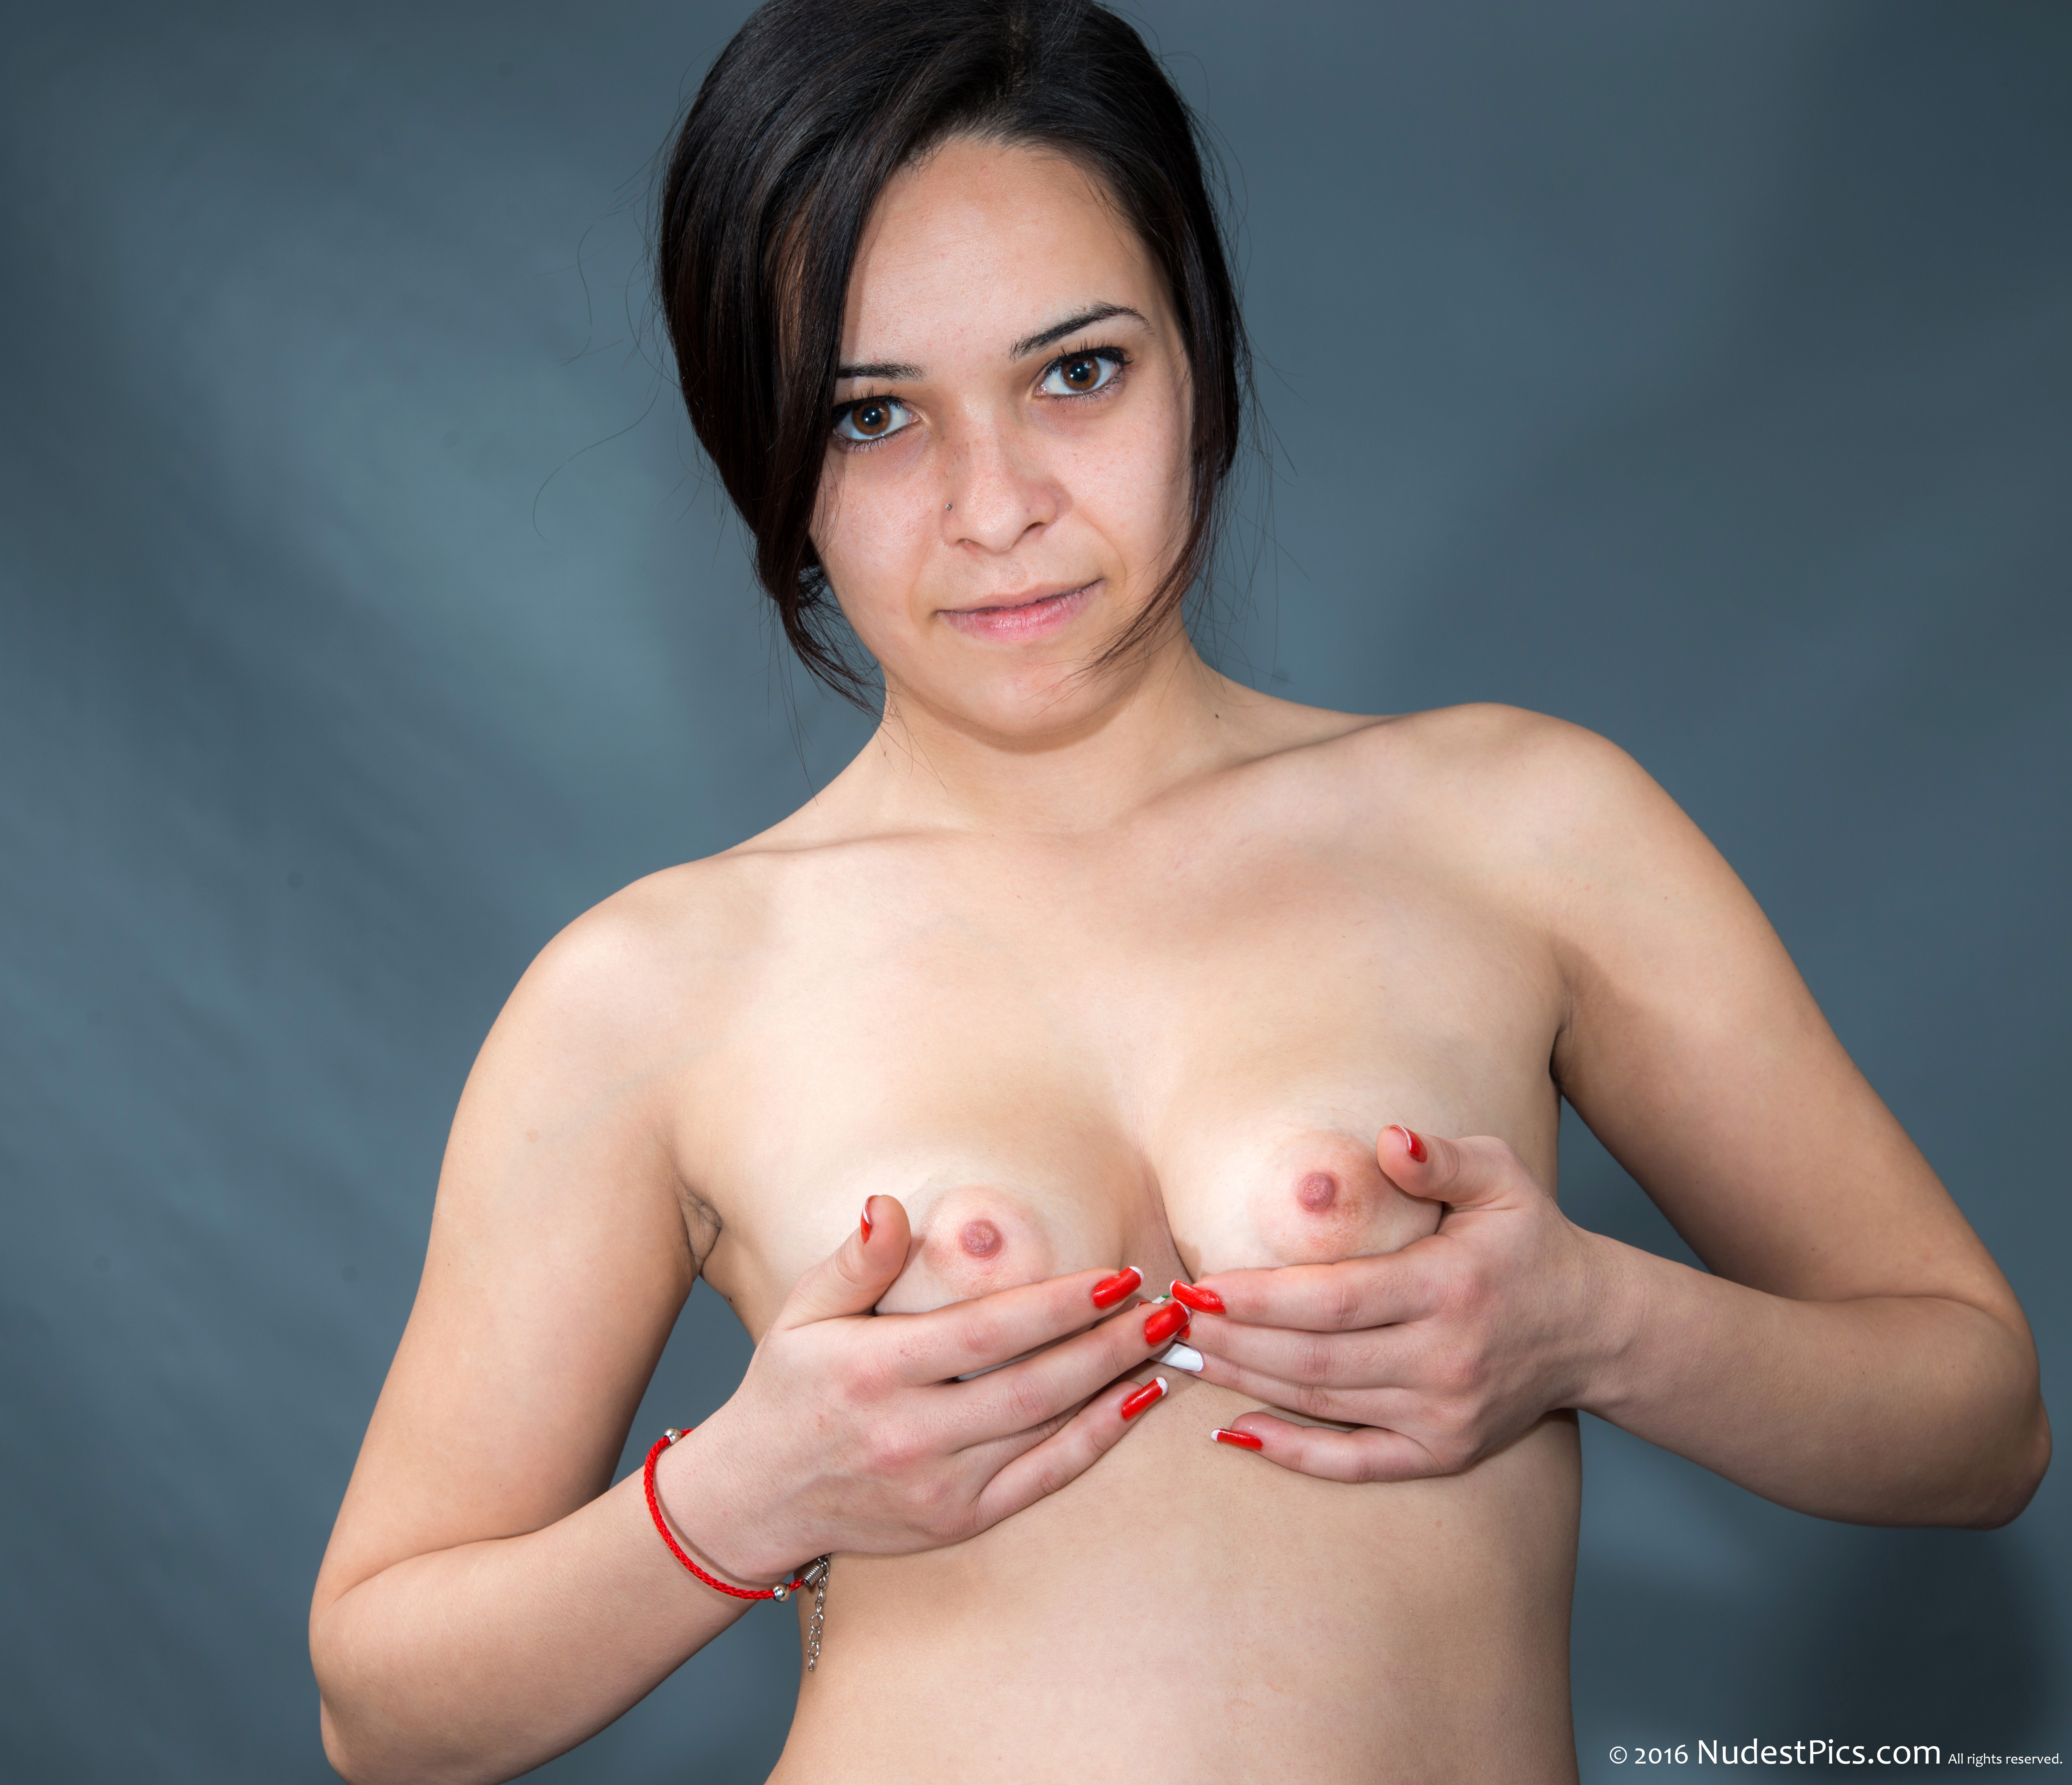 tiny titties escort in bucharest